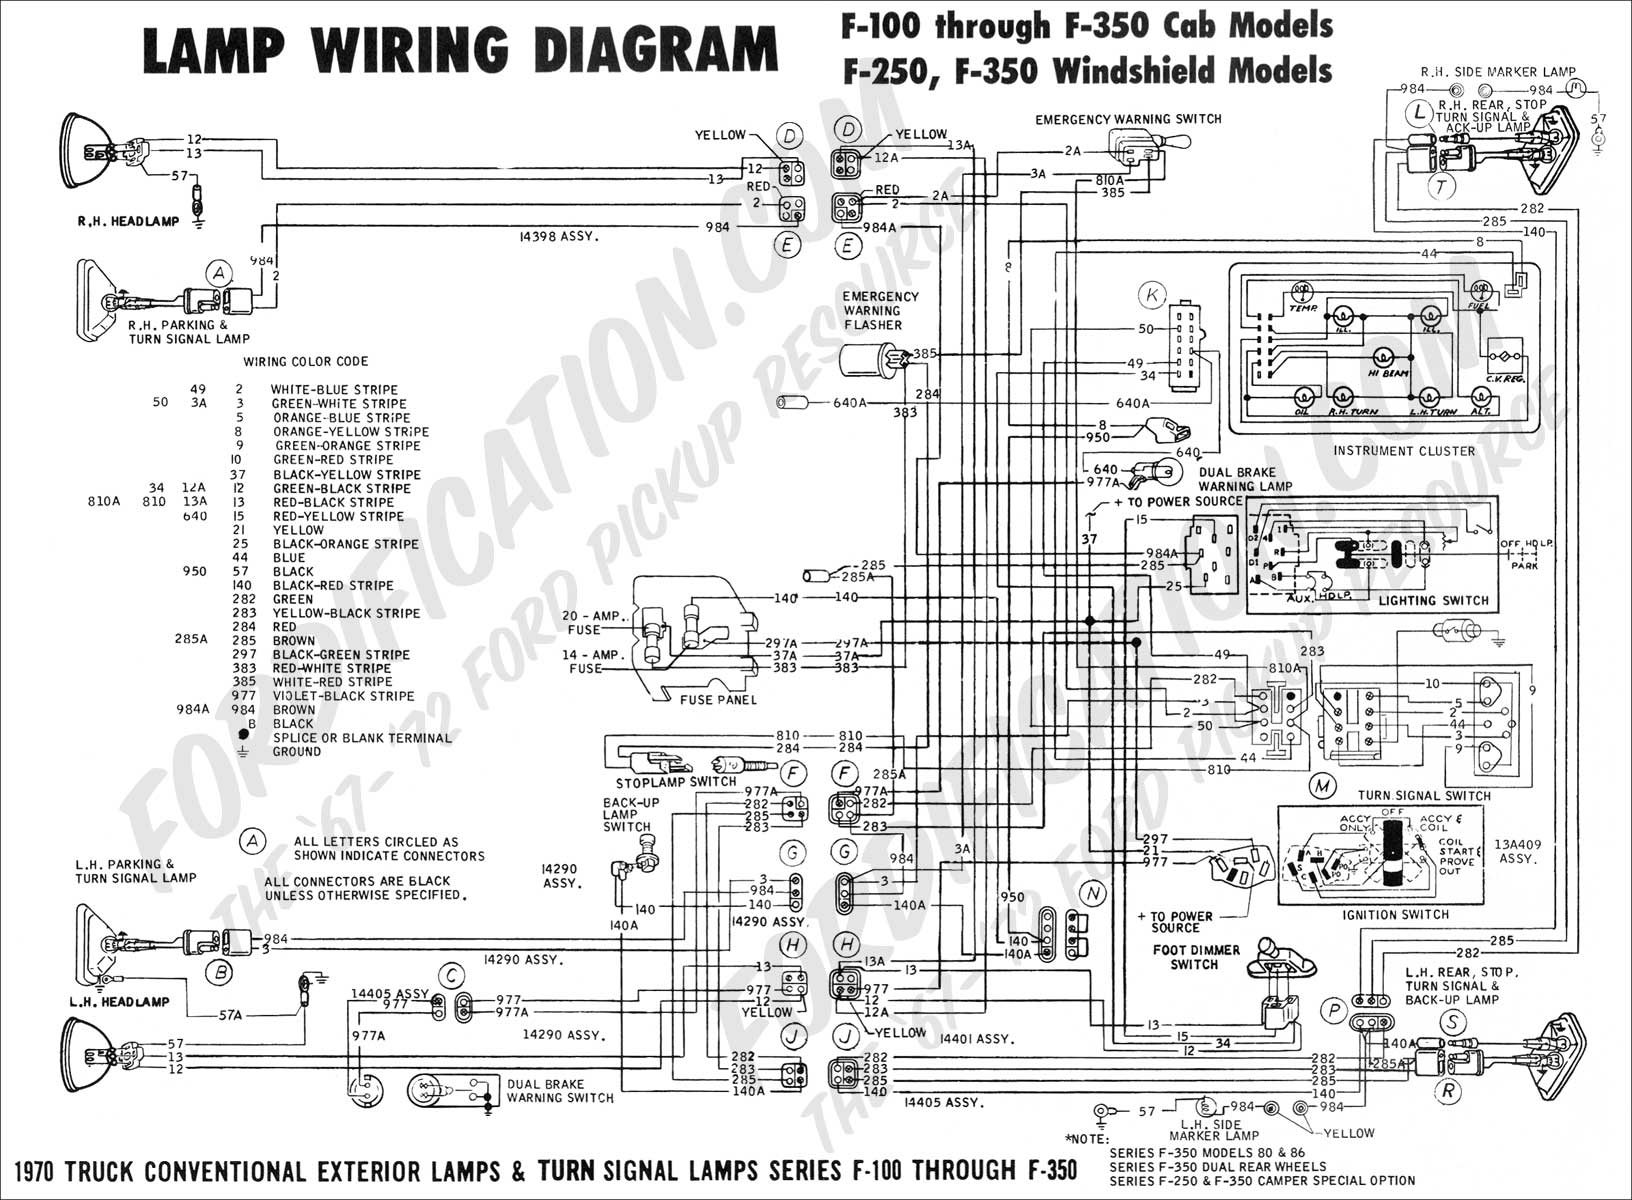 1999 F250 Trailer Wiring Diagram